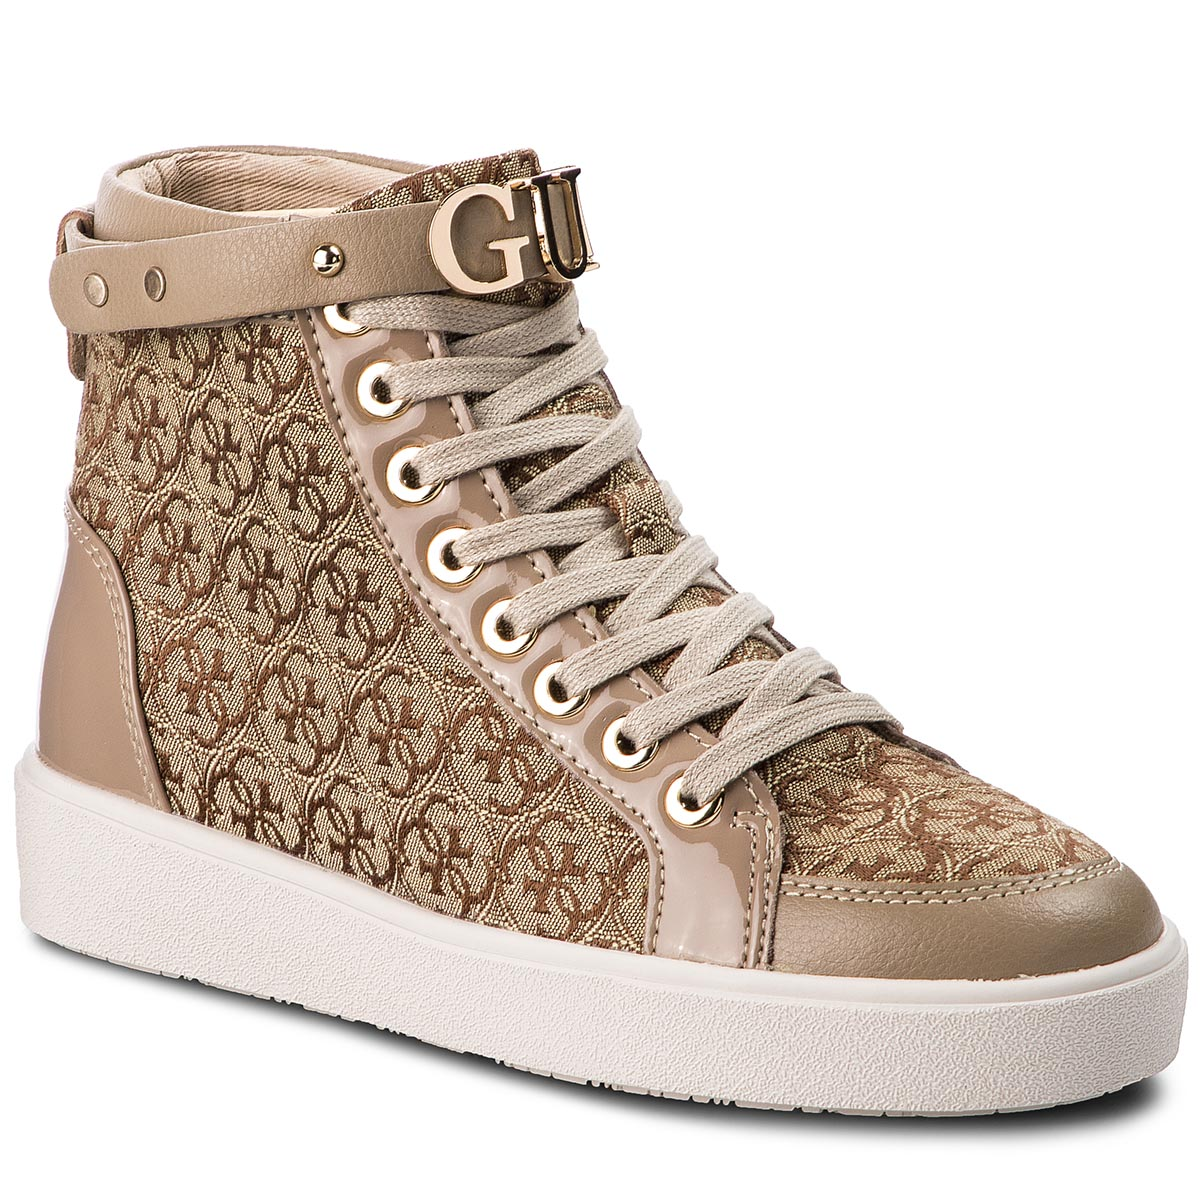 Sneakers GUESS - FLGRC3 FAL12 BEIBR